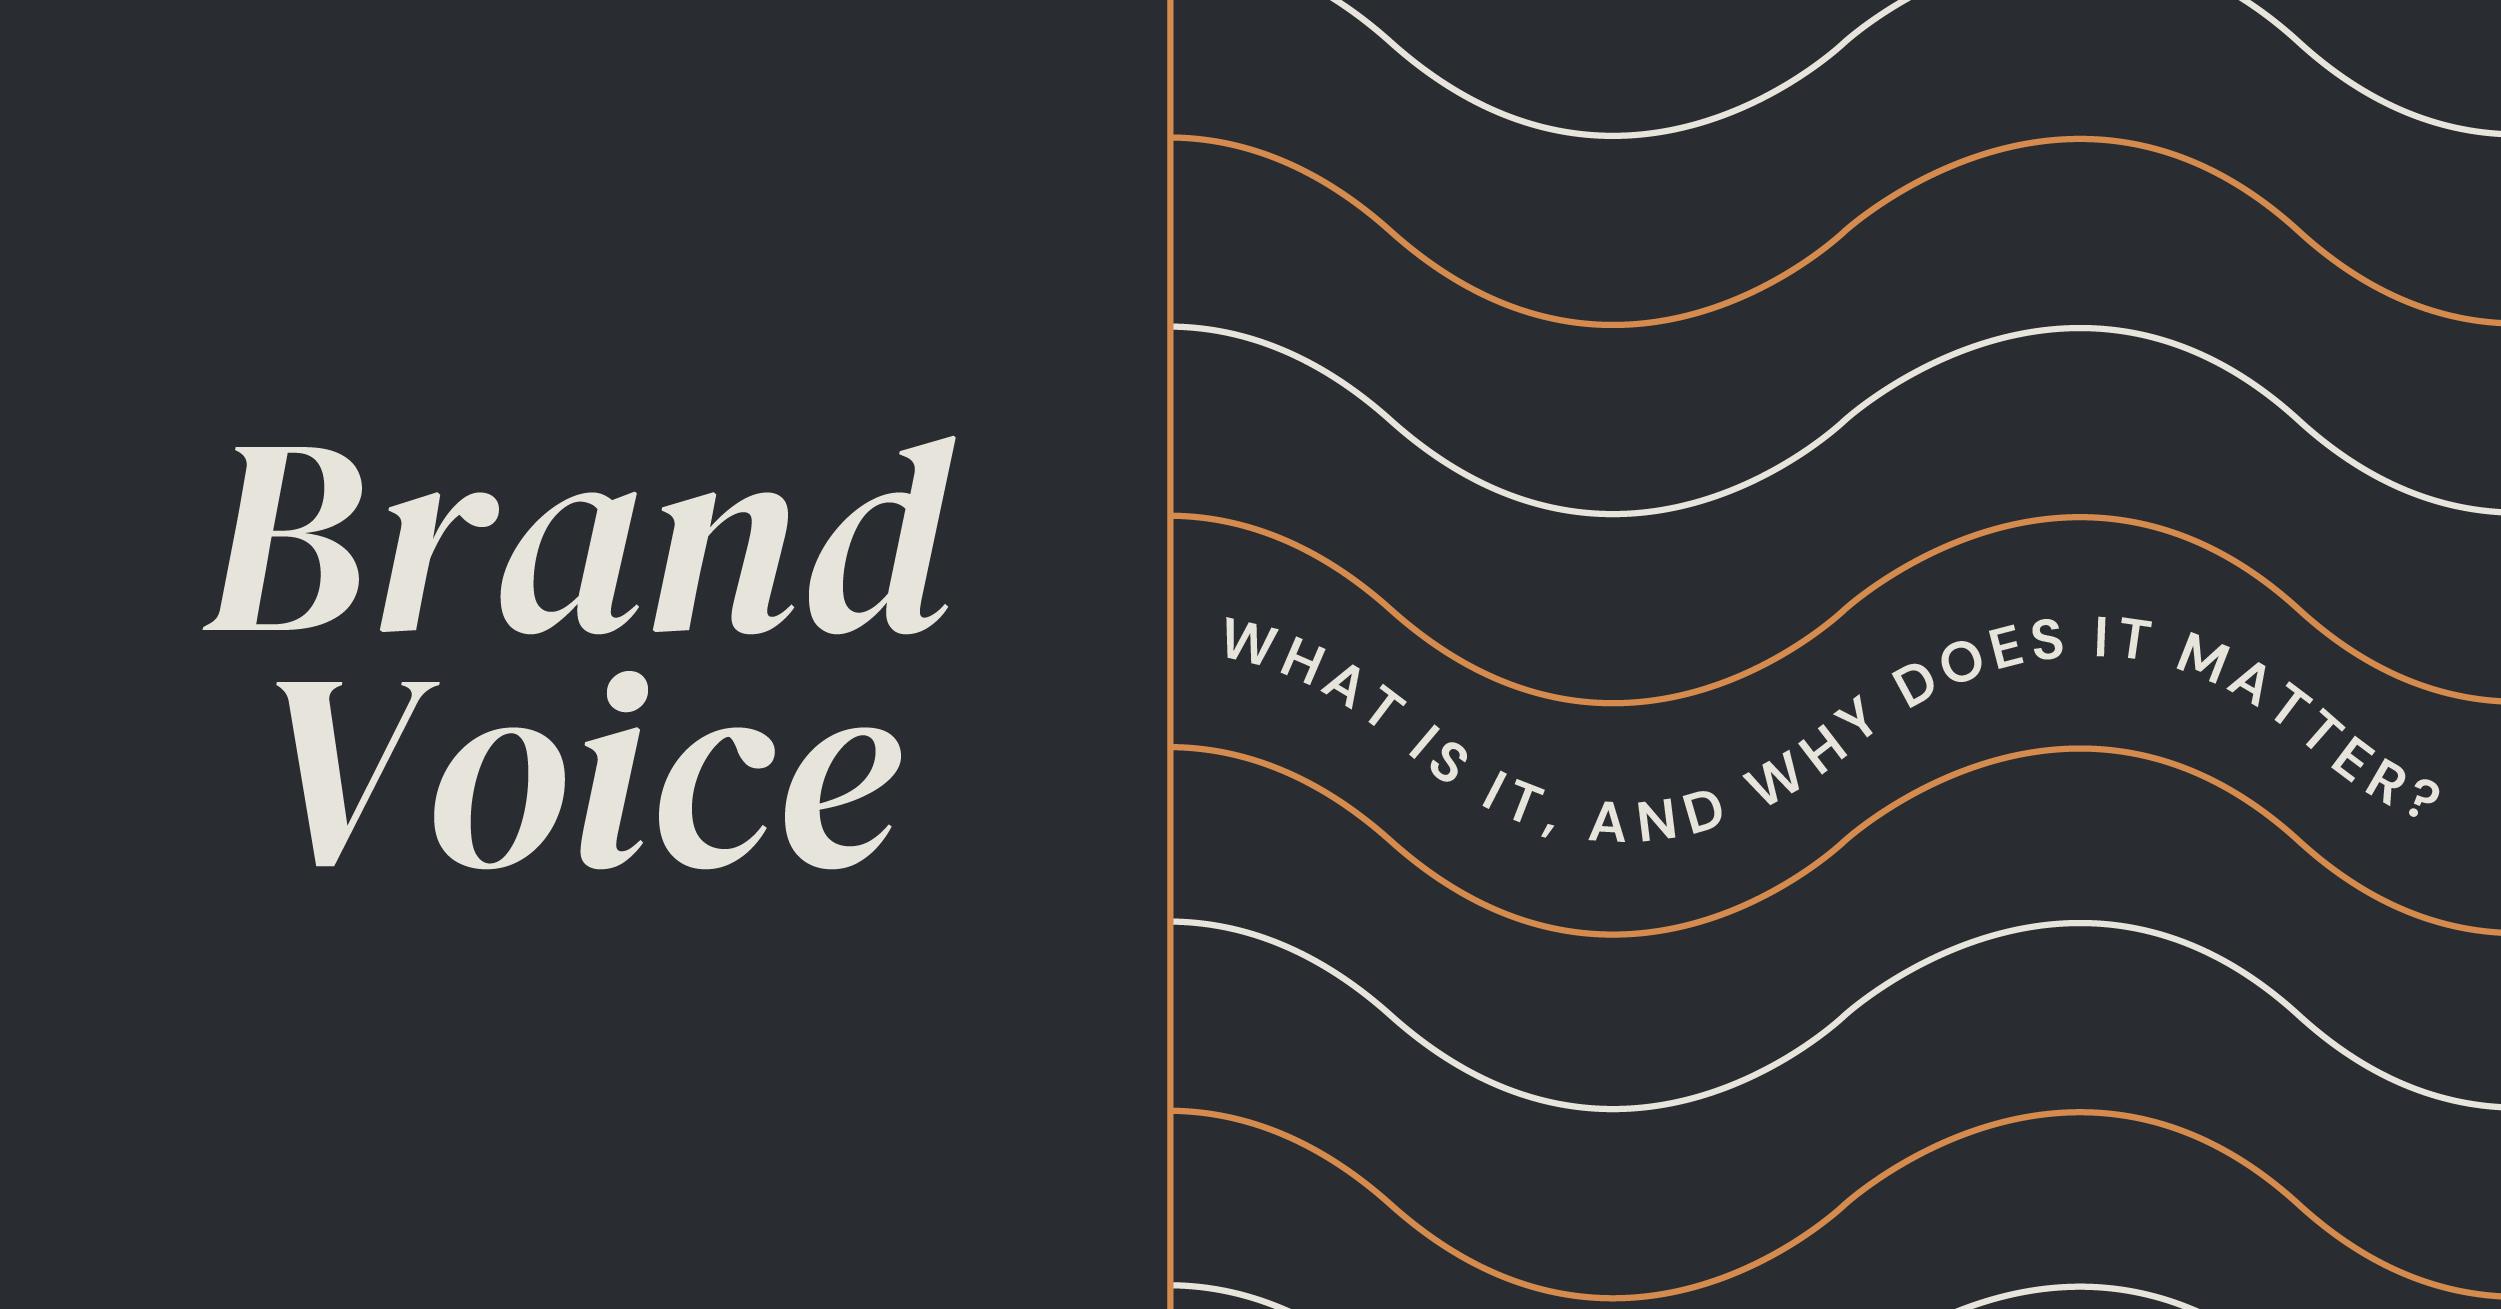 Brand Voice - Why it Matters